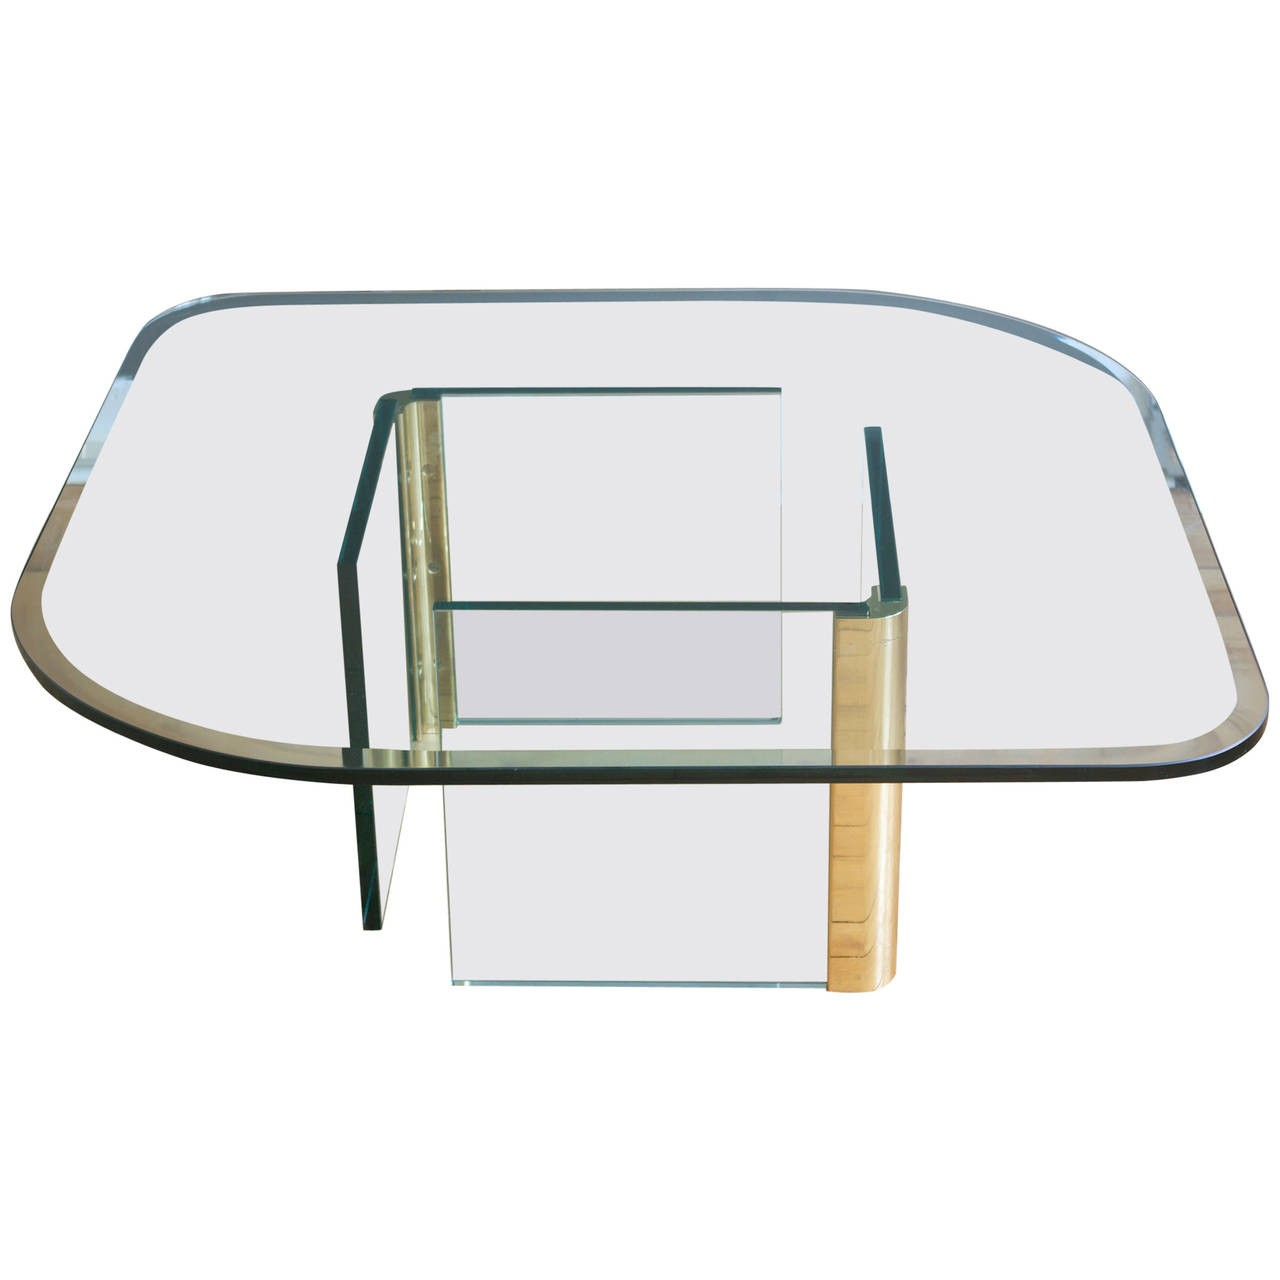 Pace collection vintage rounded glass brass coffee table geotapseo Choice Image